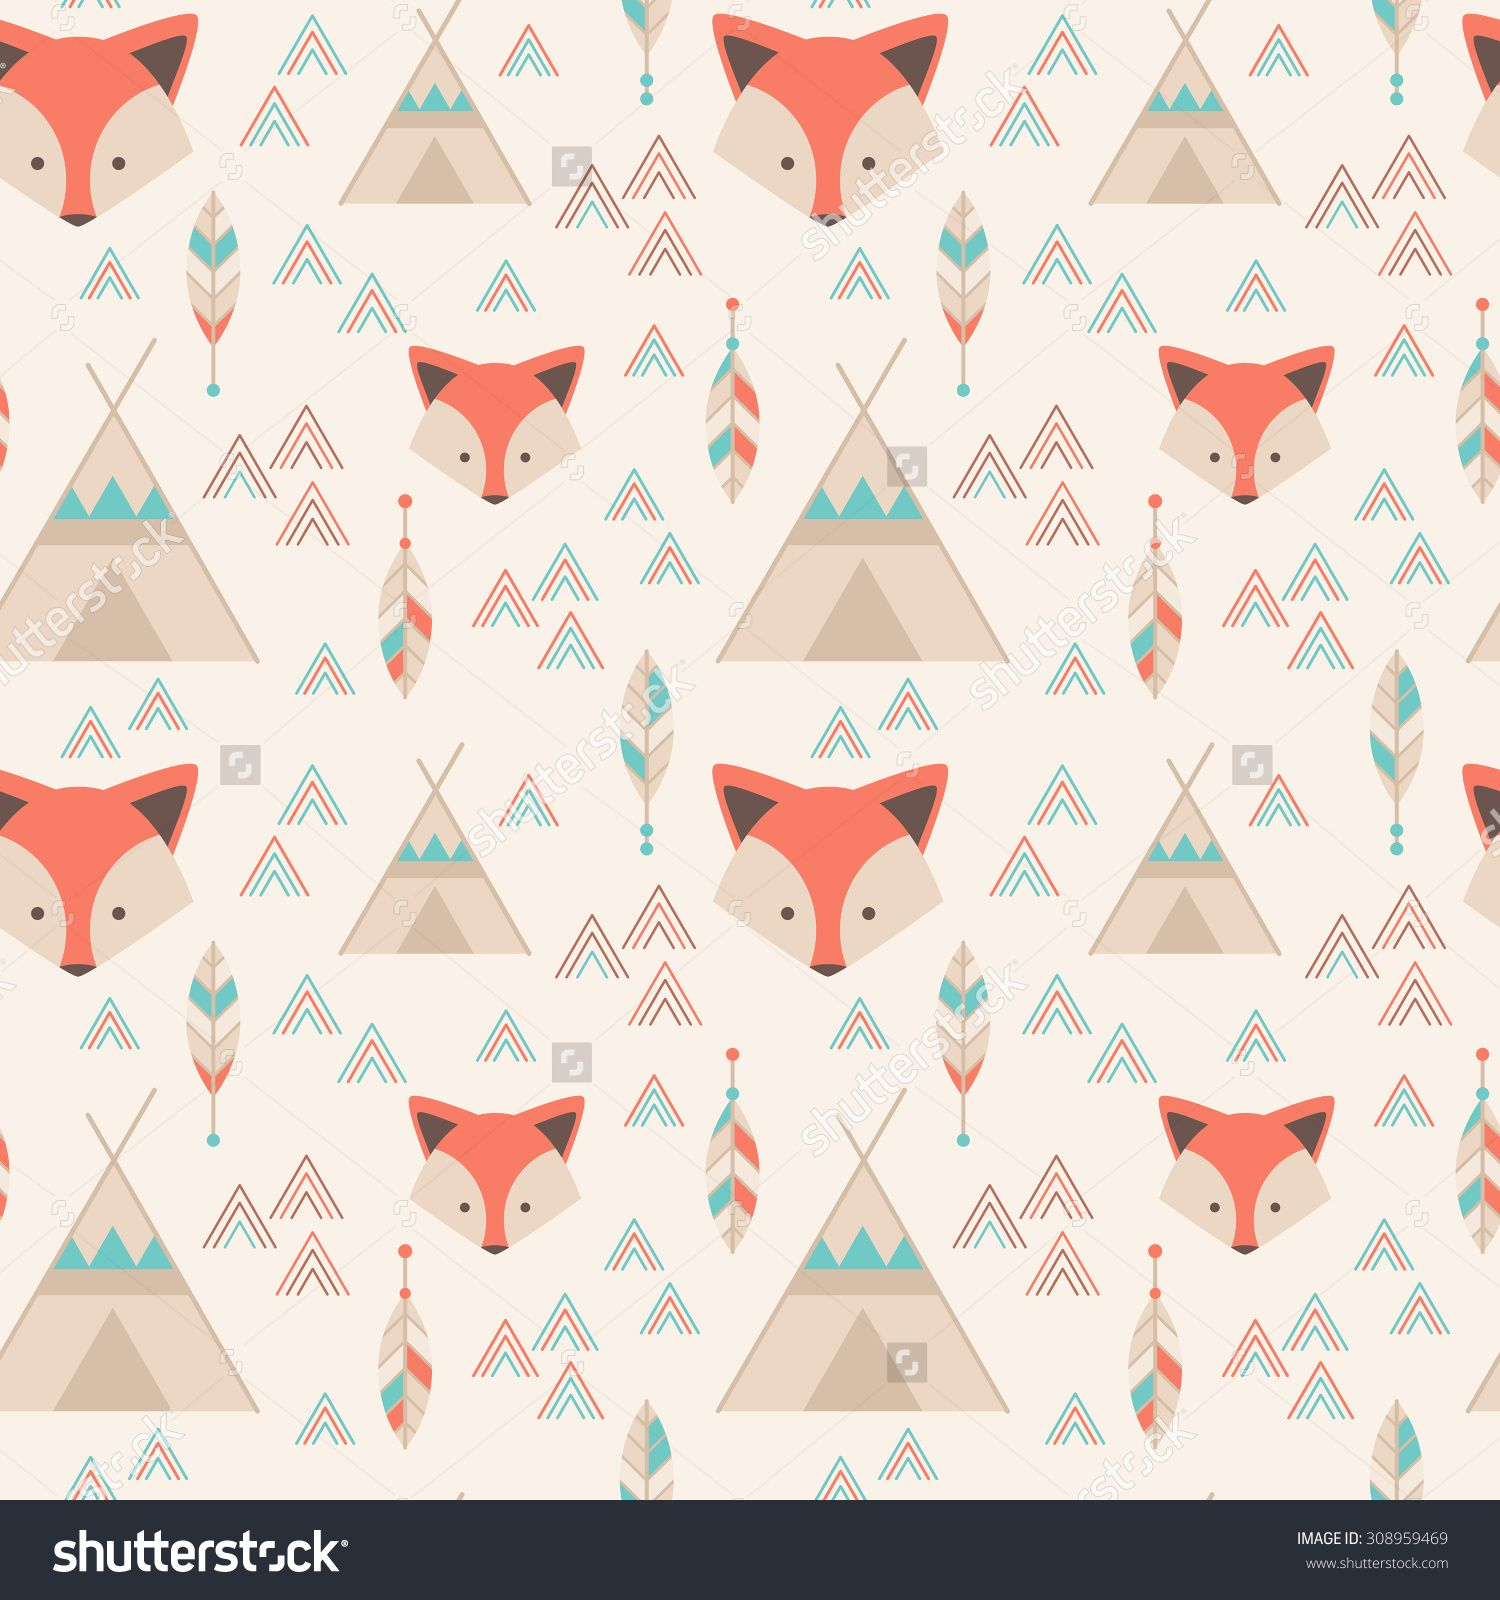 cute tribal geometric seamless pattern in cartoon style